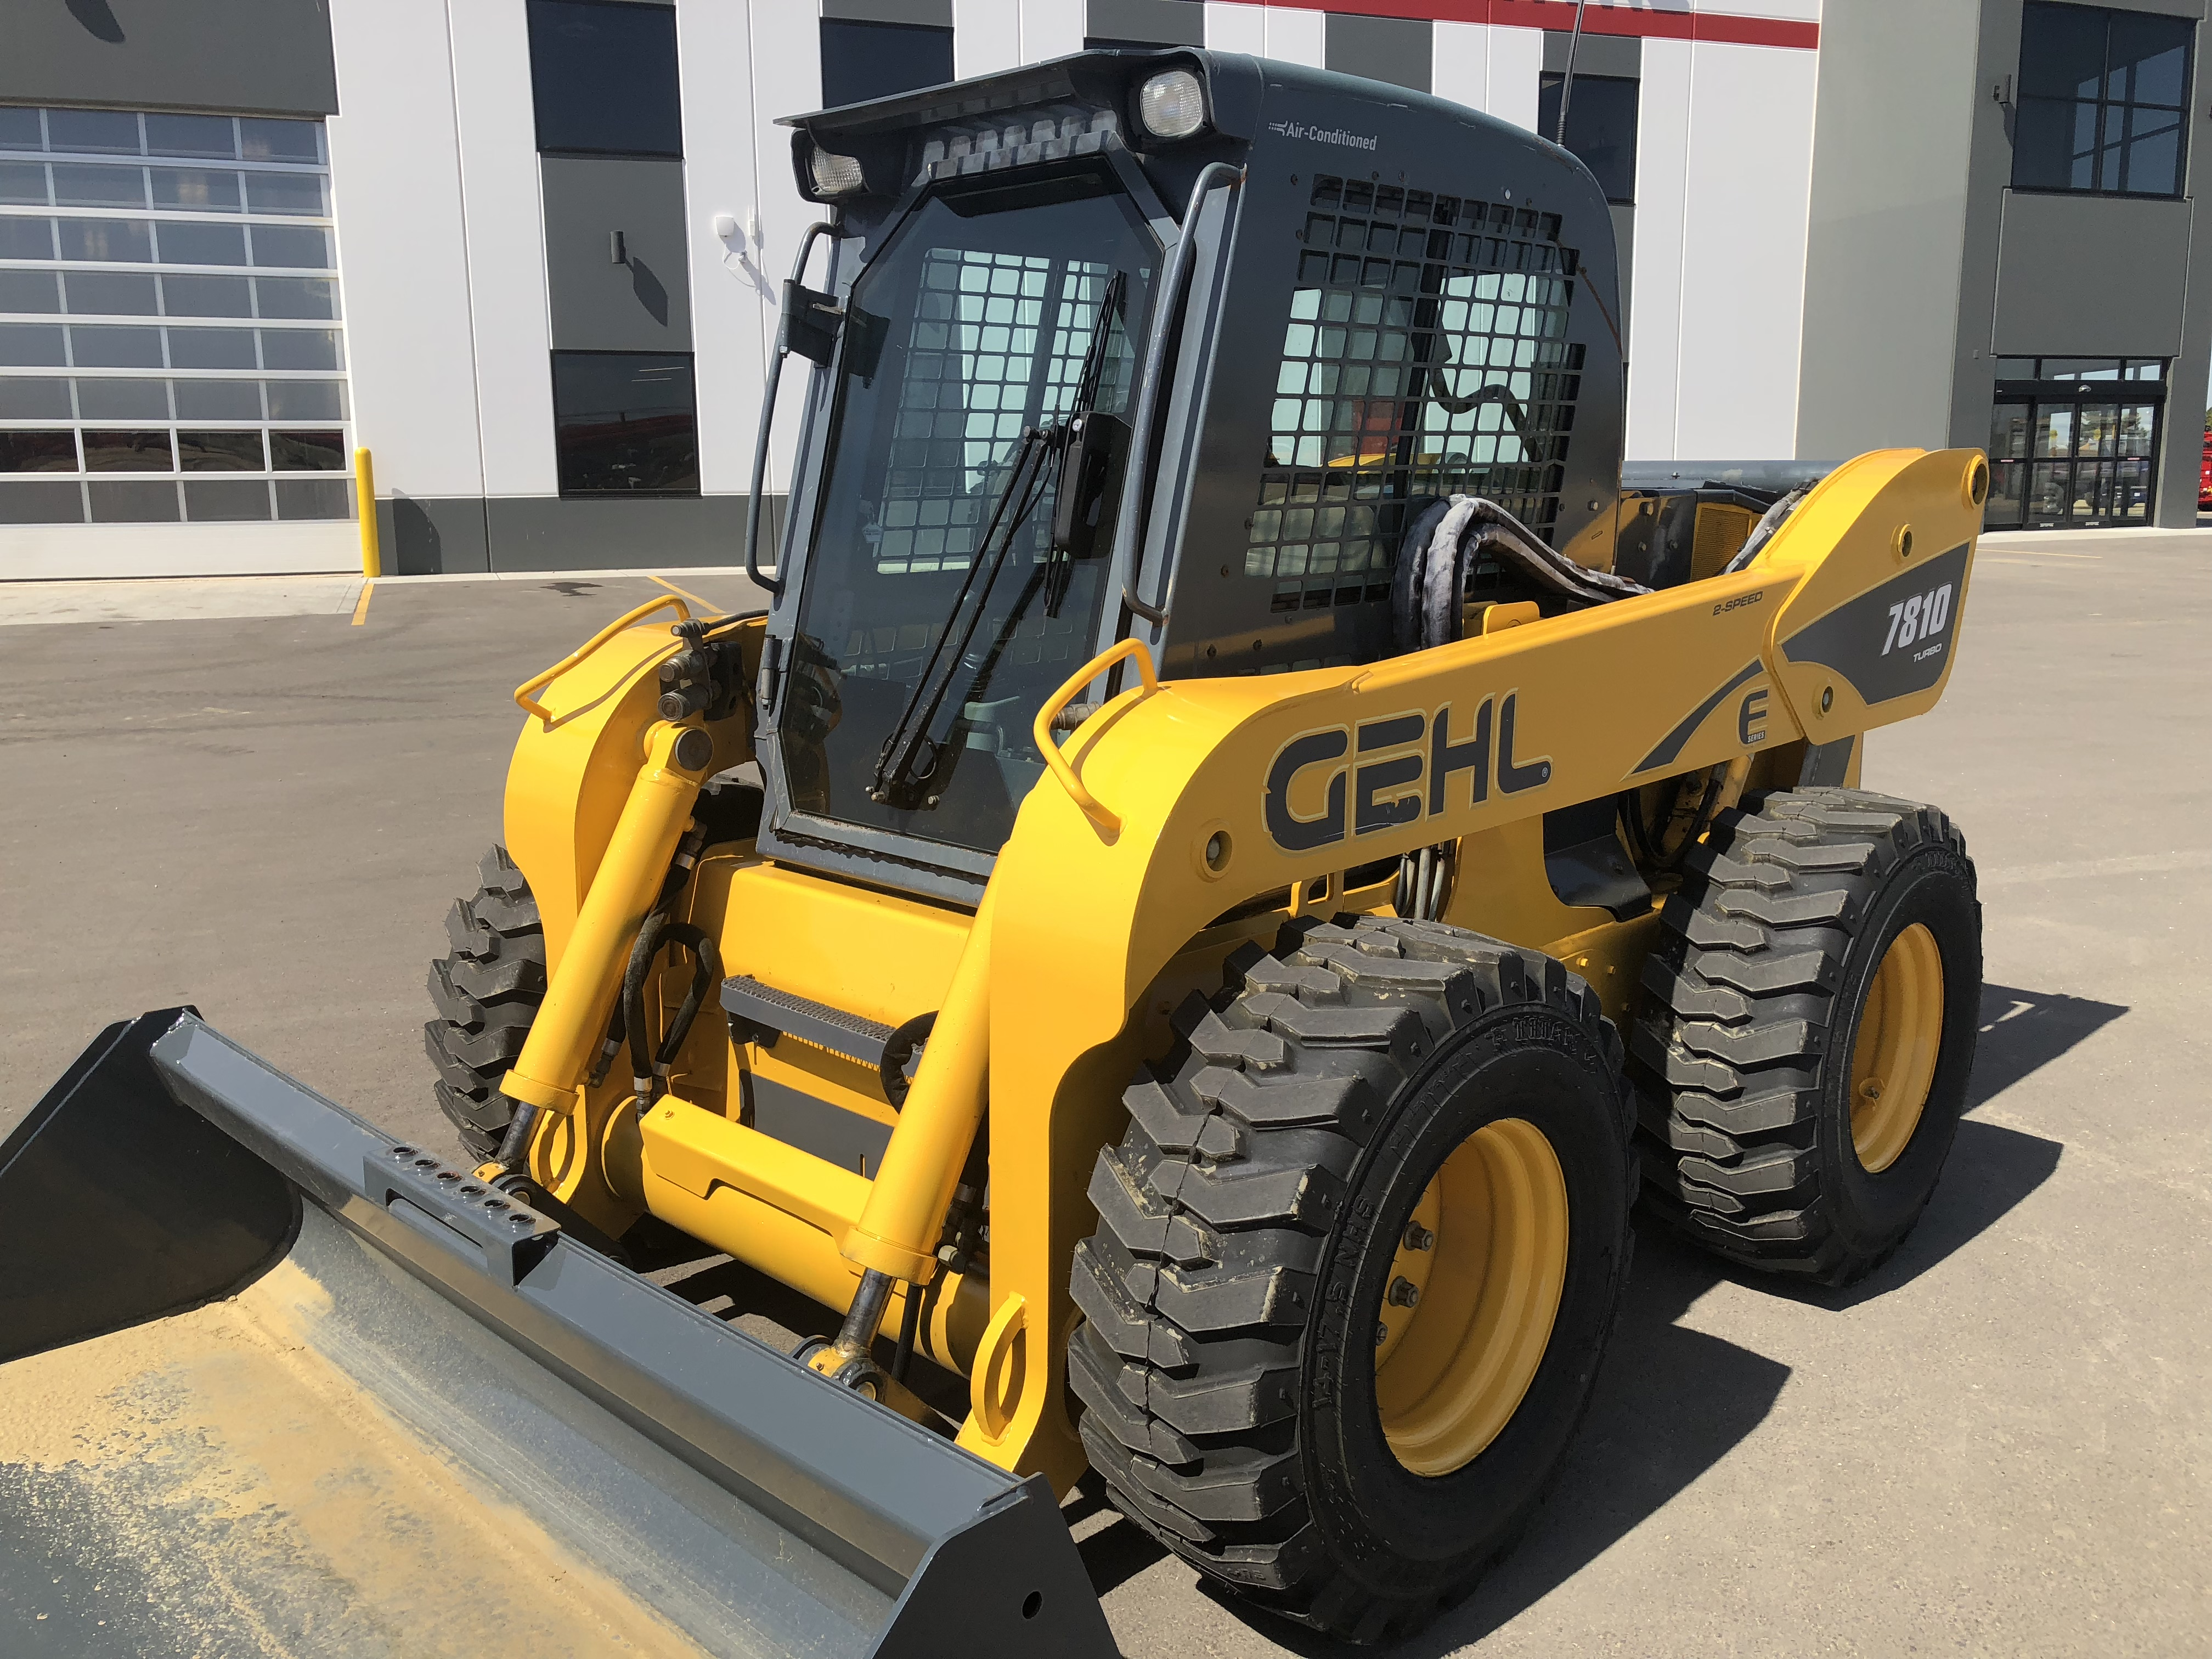 2007 Gehl 7810e Skid Steer Loader For Sale In Lacombe Ab Ironsearch